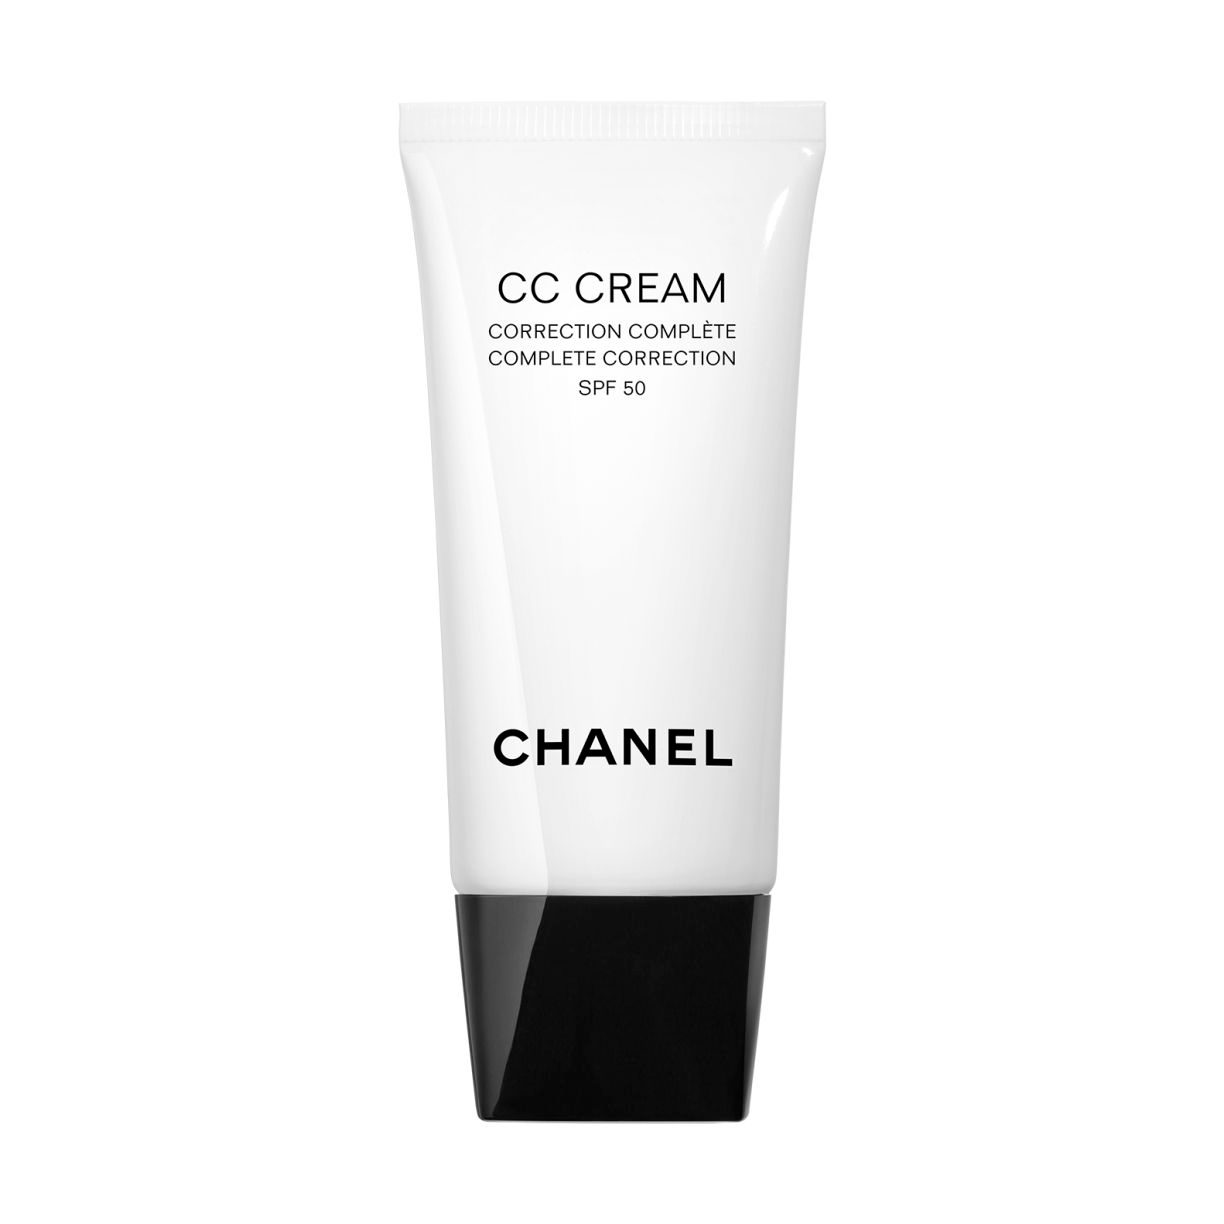 CC CREAM COMPLETE CORRECTION SPF 30